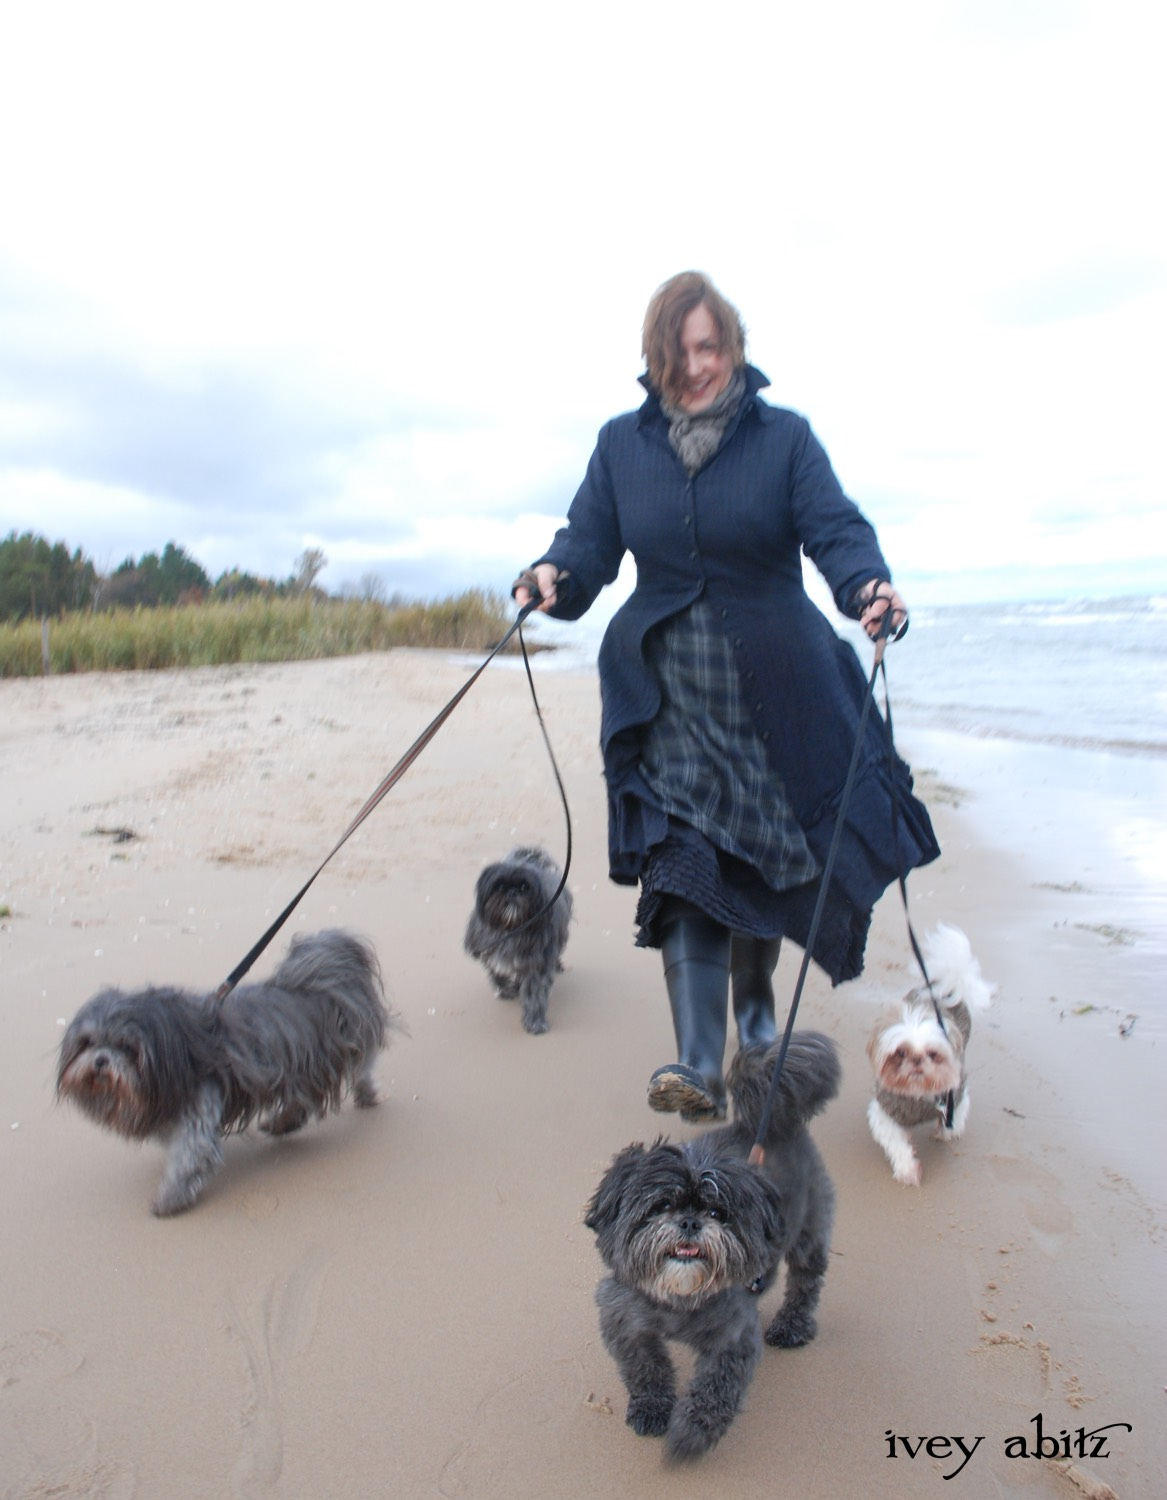 Cynthia Ivey Abitz, clothing designer, walks the beach with part of her shih tzu pack.